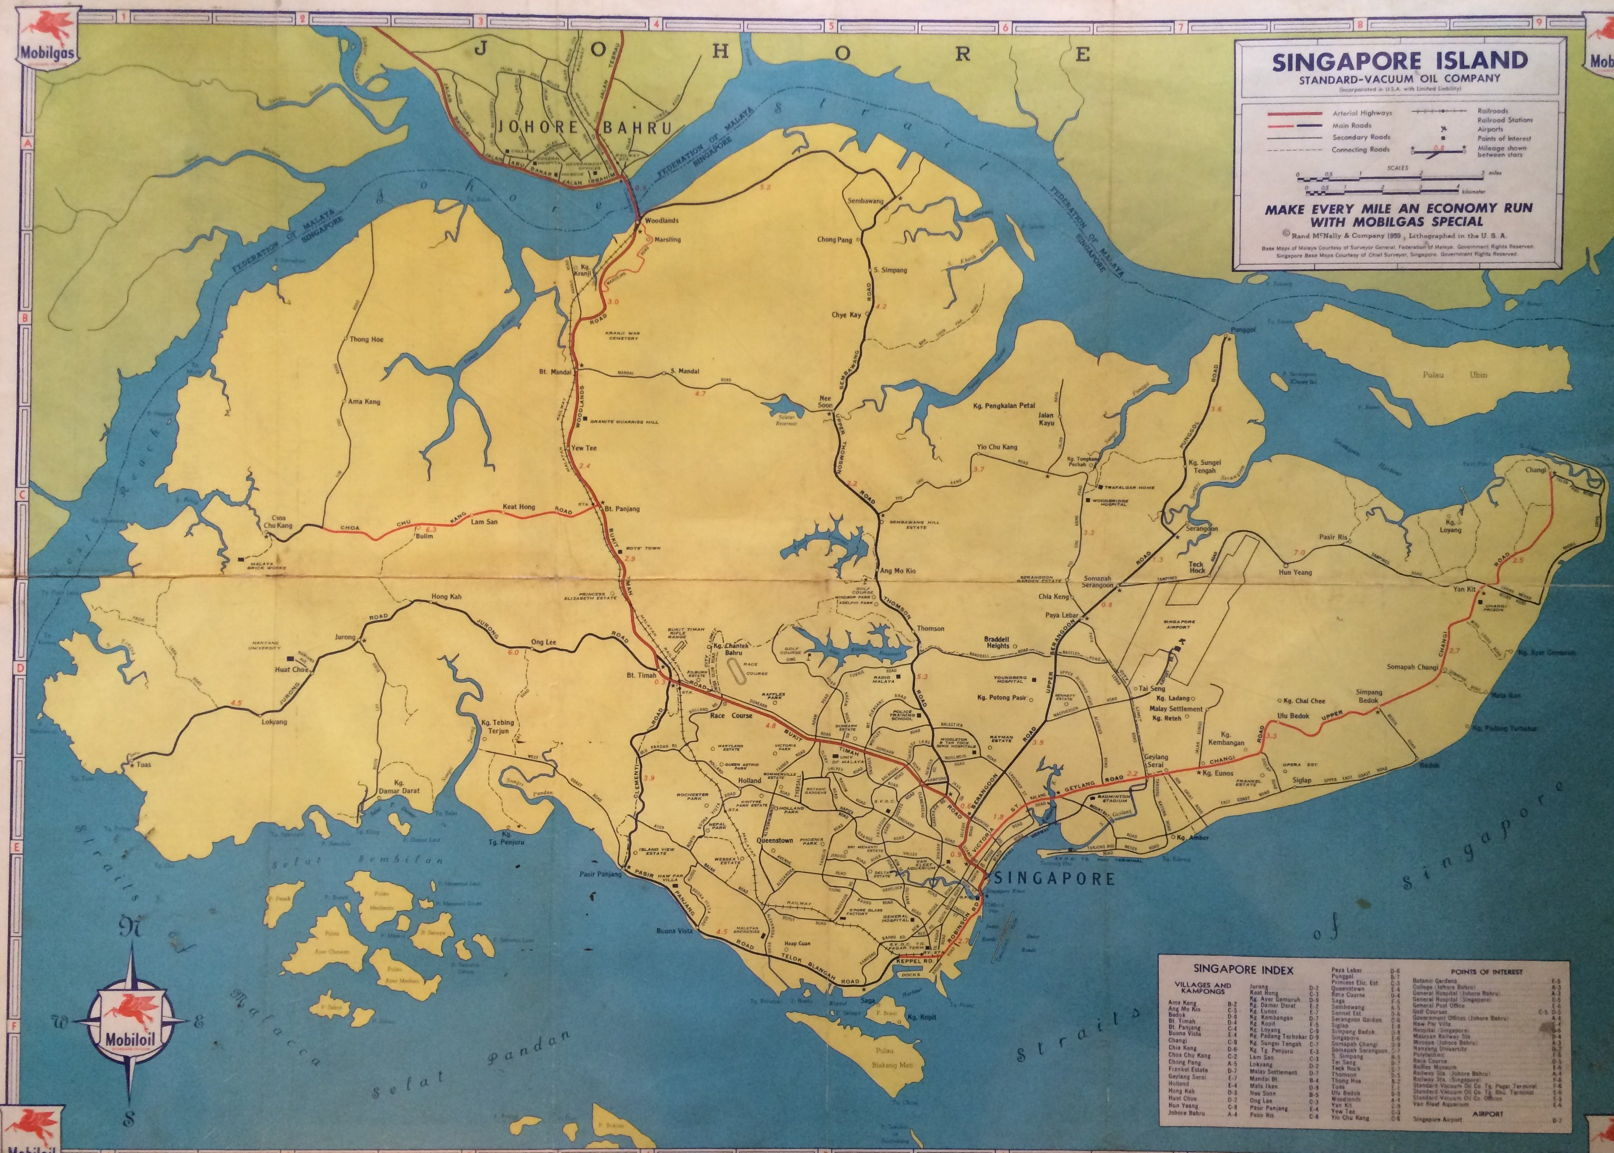 Singapore Road Map 1959 Mobil Oil